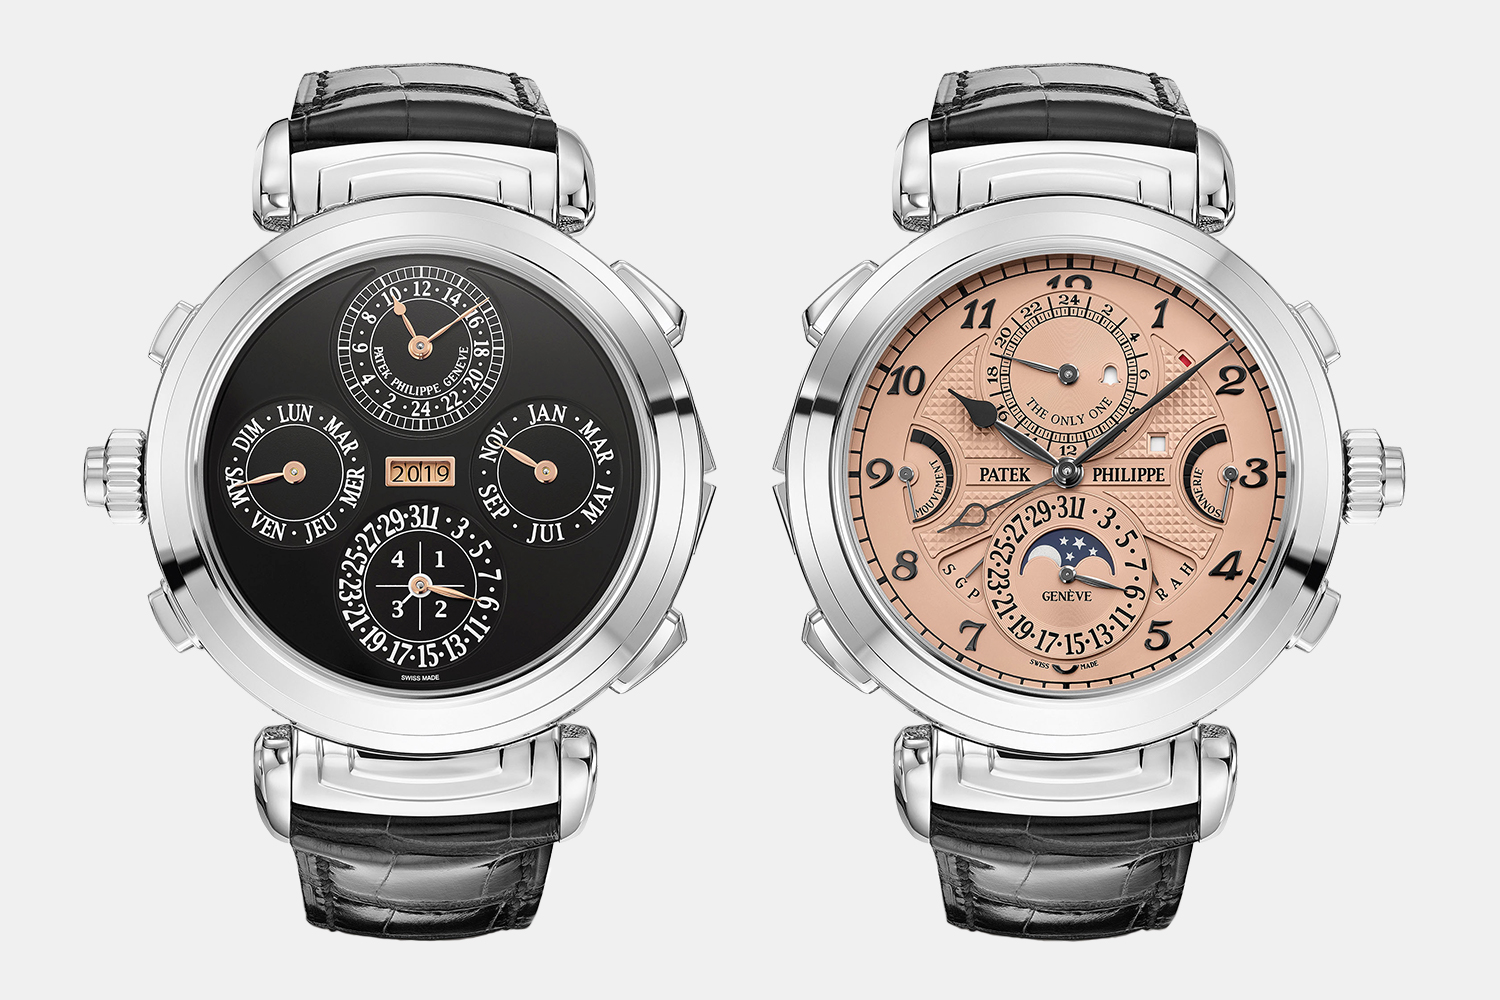 Only Watch Patek Philippe Grandmaster Chime ref. 6300A